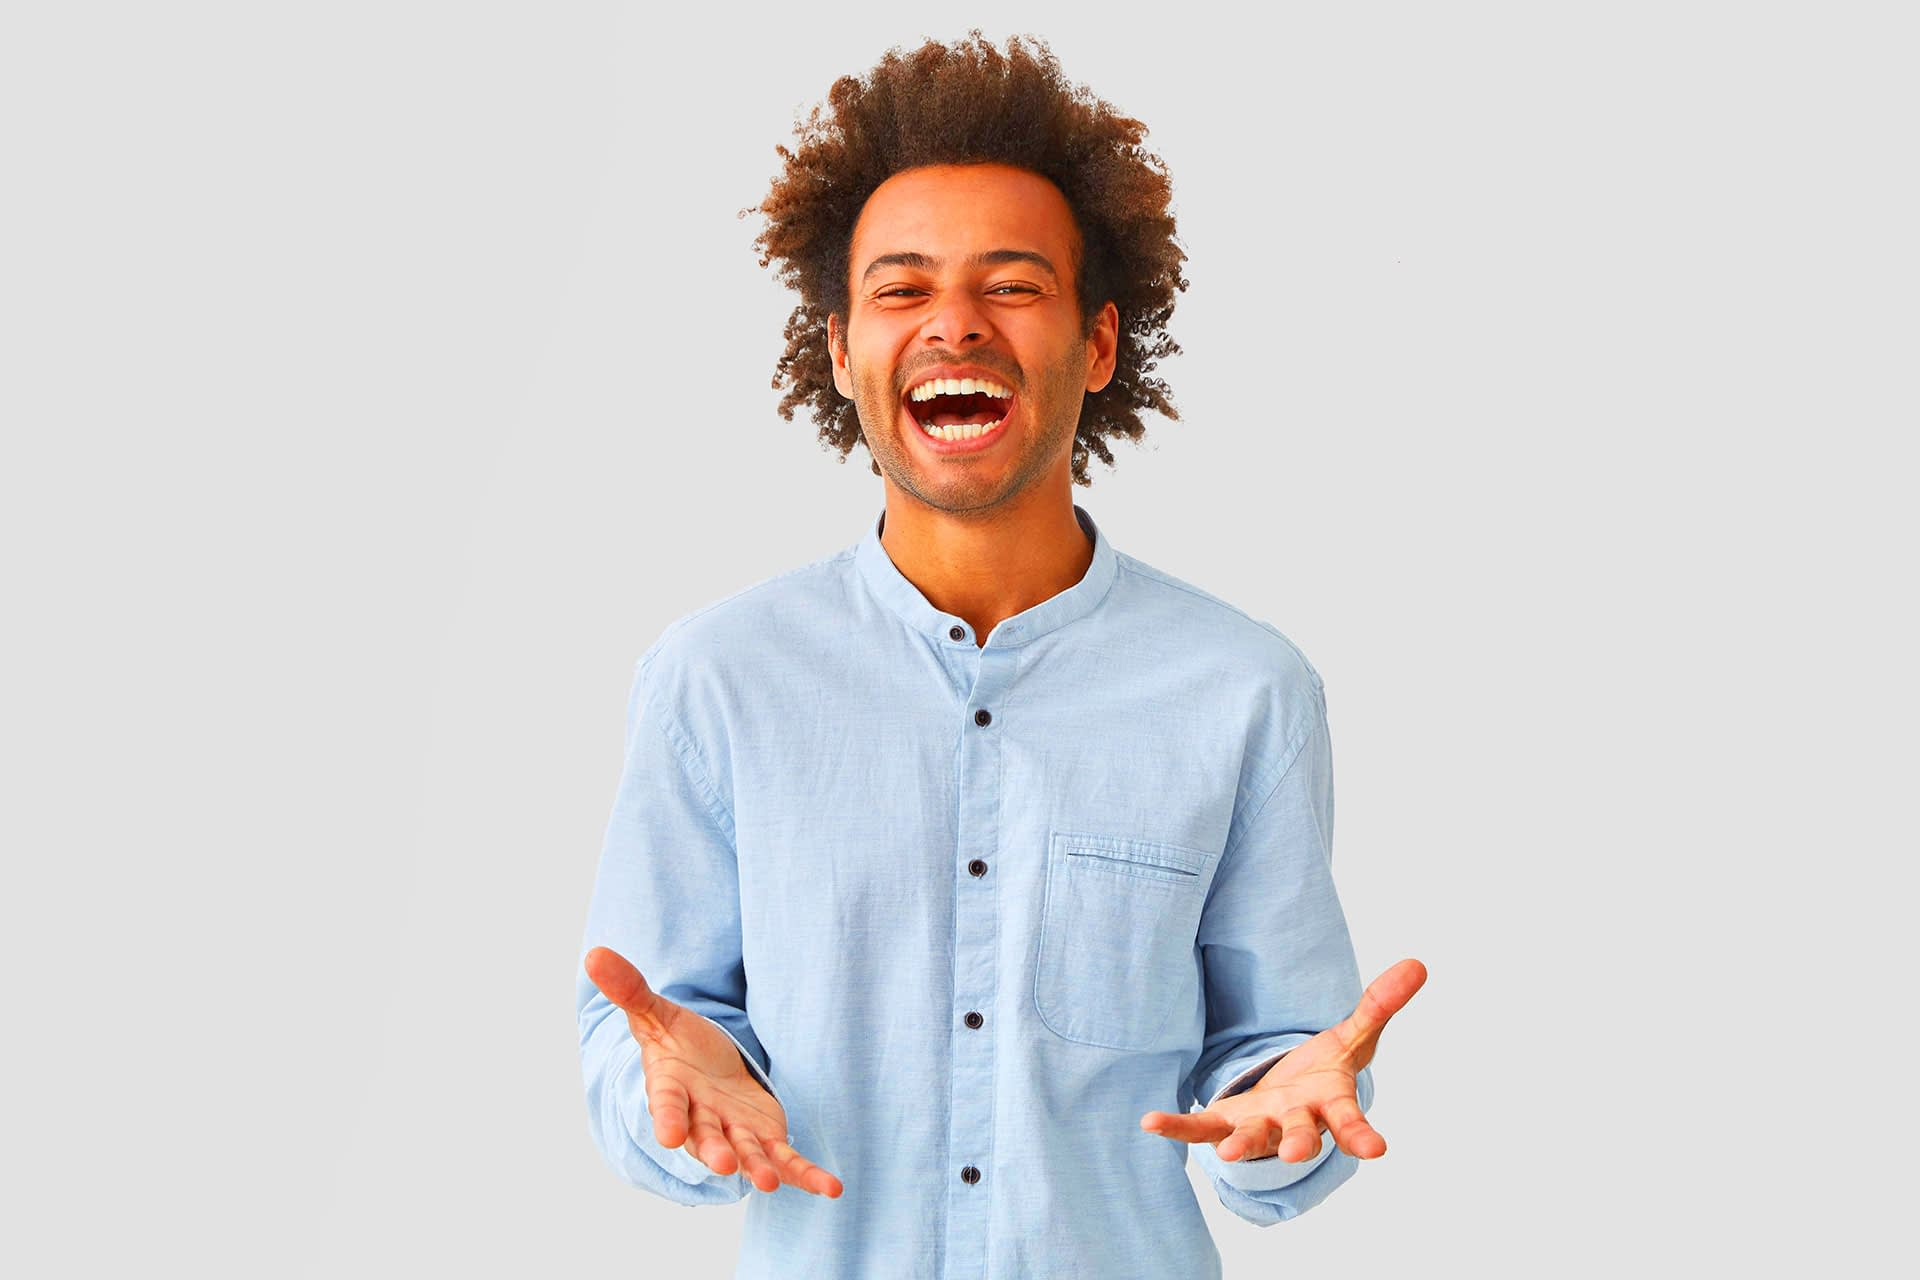 Overjoyed attractive man dressed in elegant shirt opens mouth widely, laughs joyfully, expresses positivity.